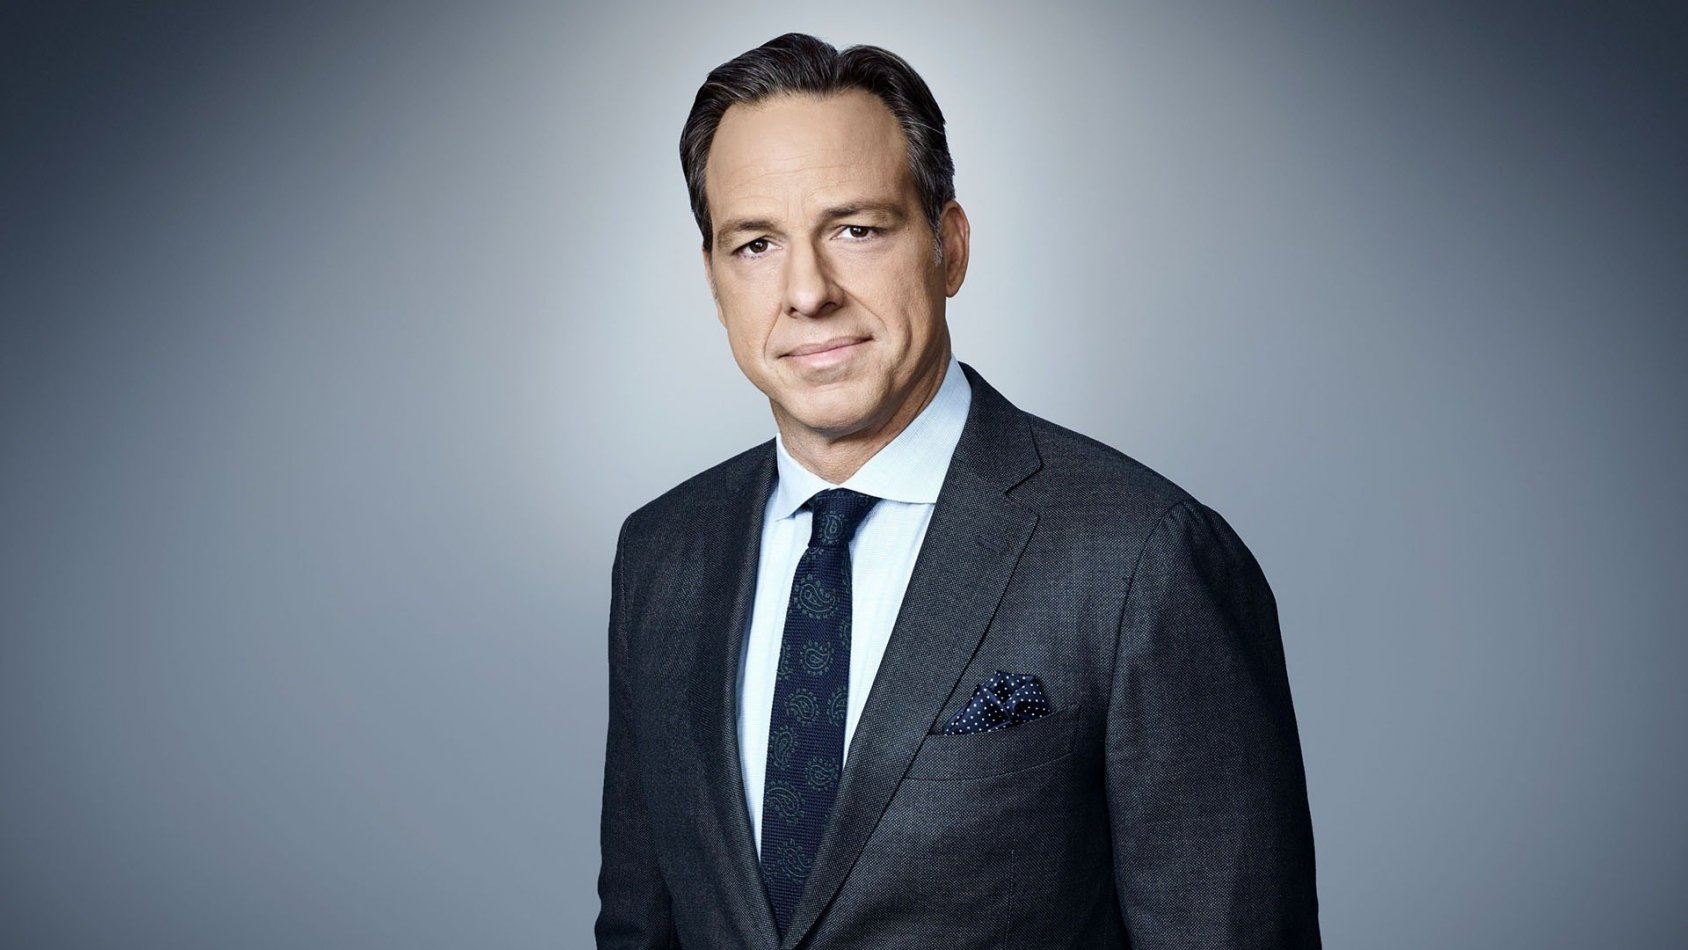 State of the Union With Jake Tapper